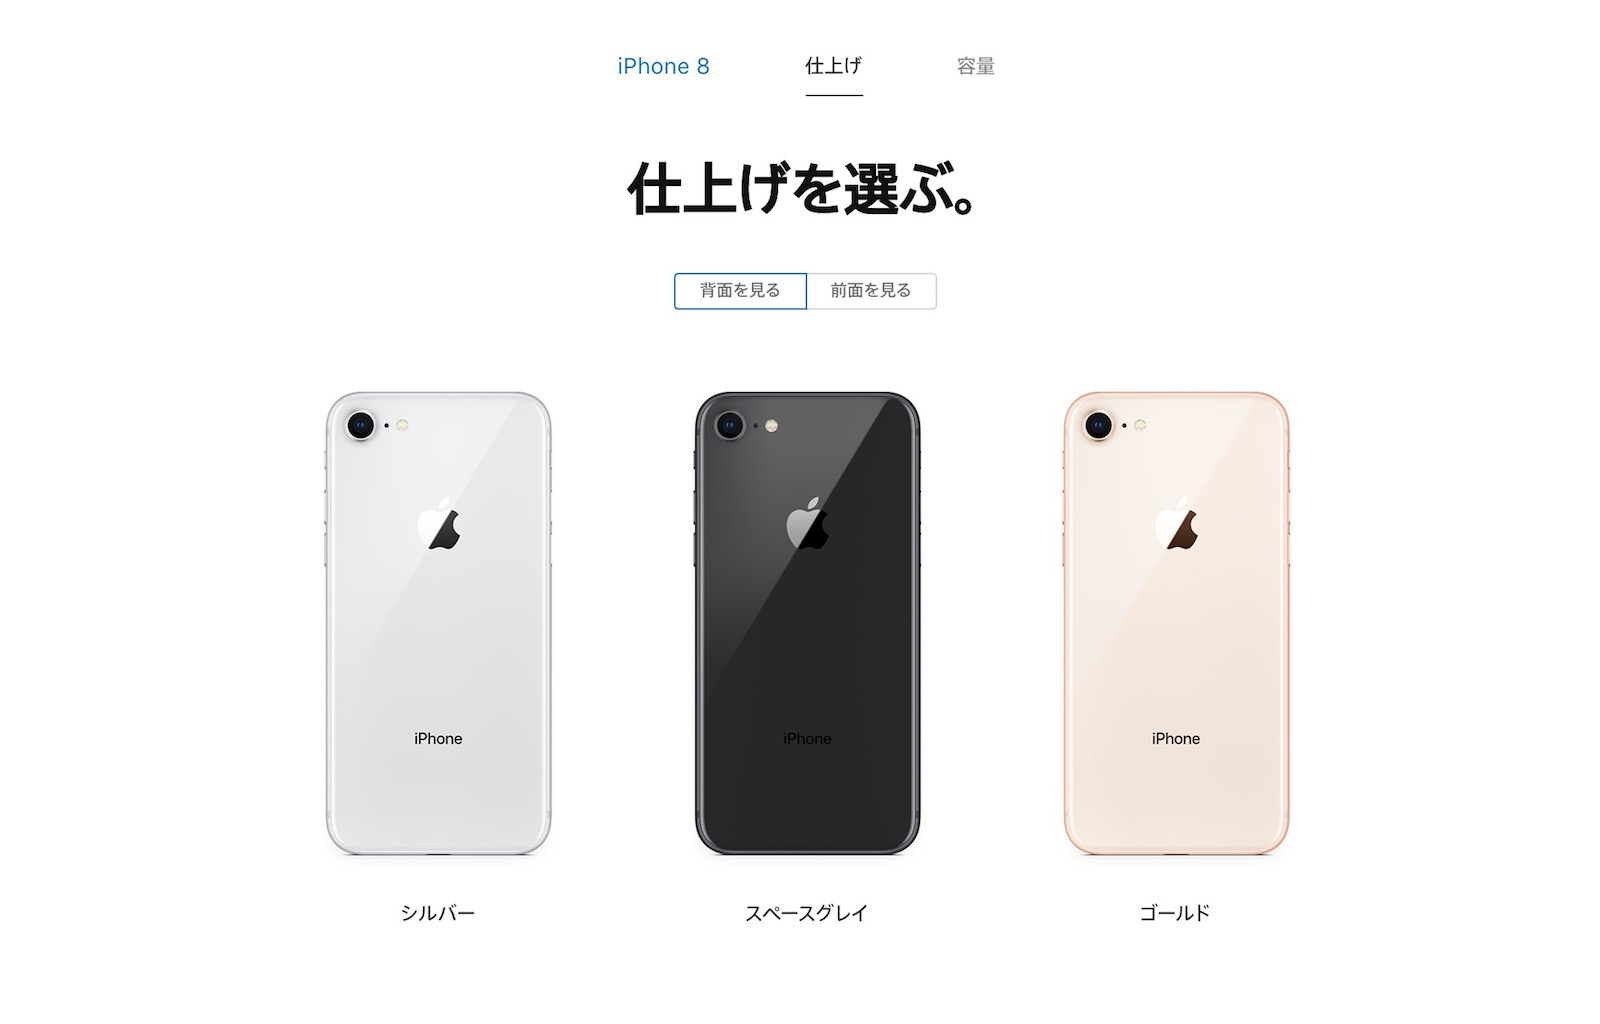 iphone-8-red-has-disappeared.jpg